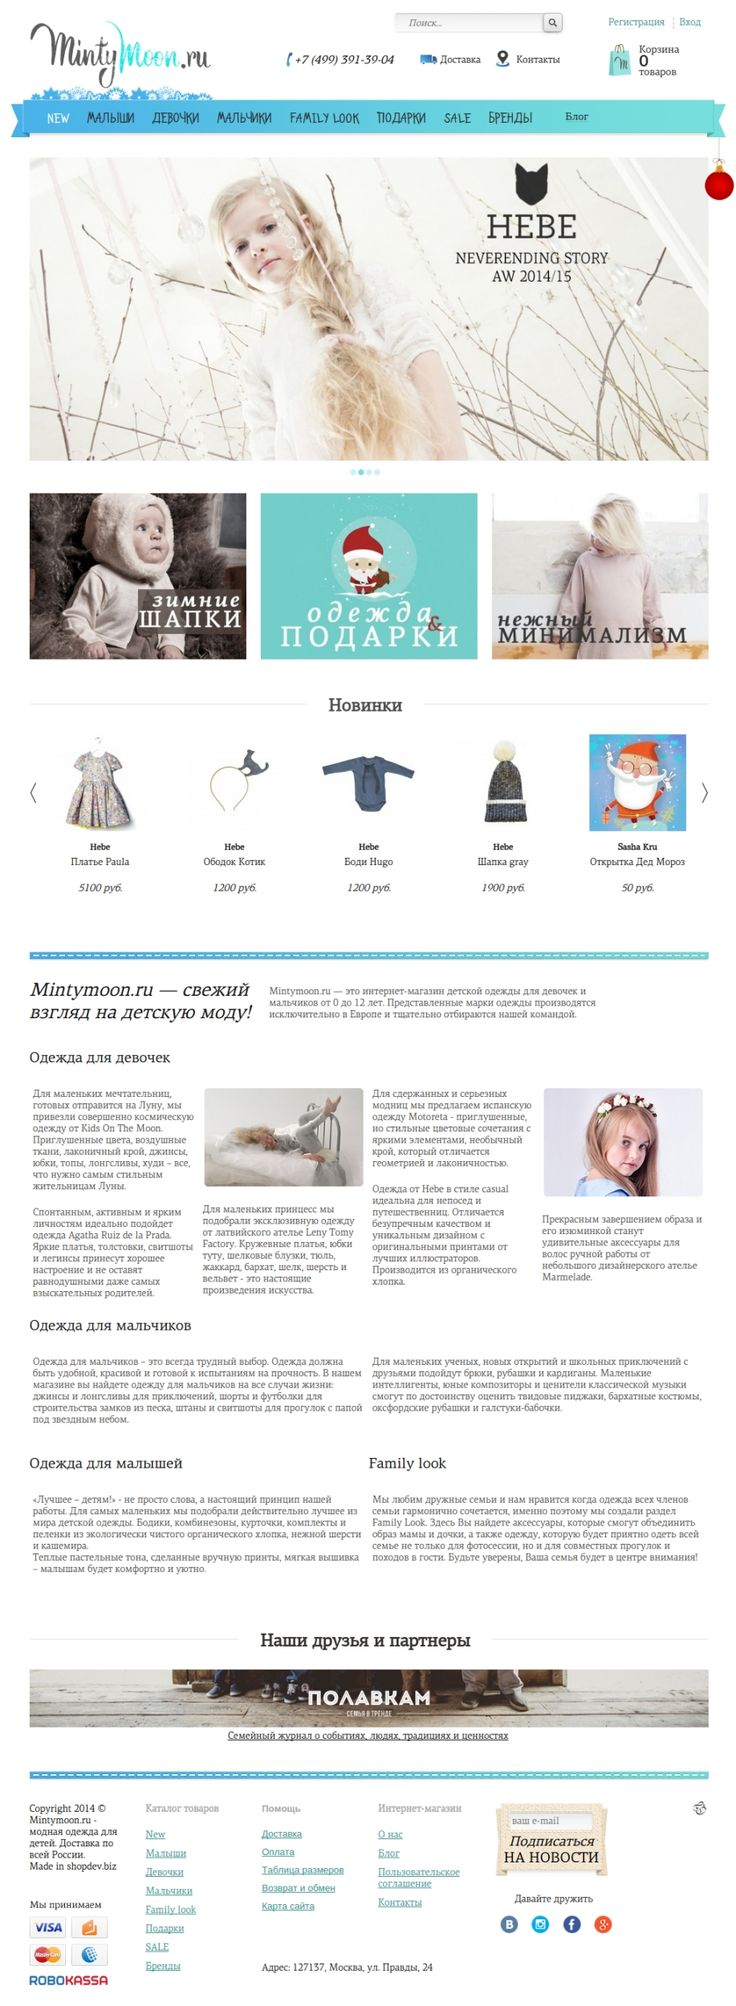 Online children clothing store. Ecommerce PHP,CSS,HTML,OpenCart,JavaScript,AJAX,jQuery,Ecommerce Platform Development Online children clothing store. Unique design. Filter system directory. More than 20 payment methods. Modules that increase the average check at the store. Modules that help to beat the competition. Modules to facilitate selection of goods and increase the convenience of the site. Sales promotion. Modules for repeat sales.  #webdesign #web #digital #store #shop